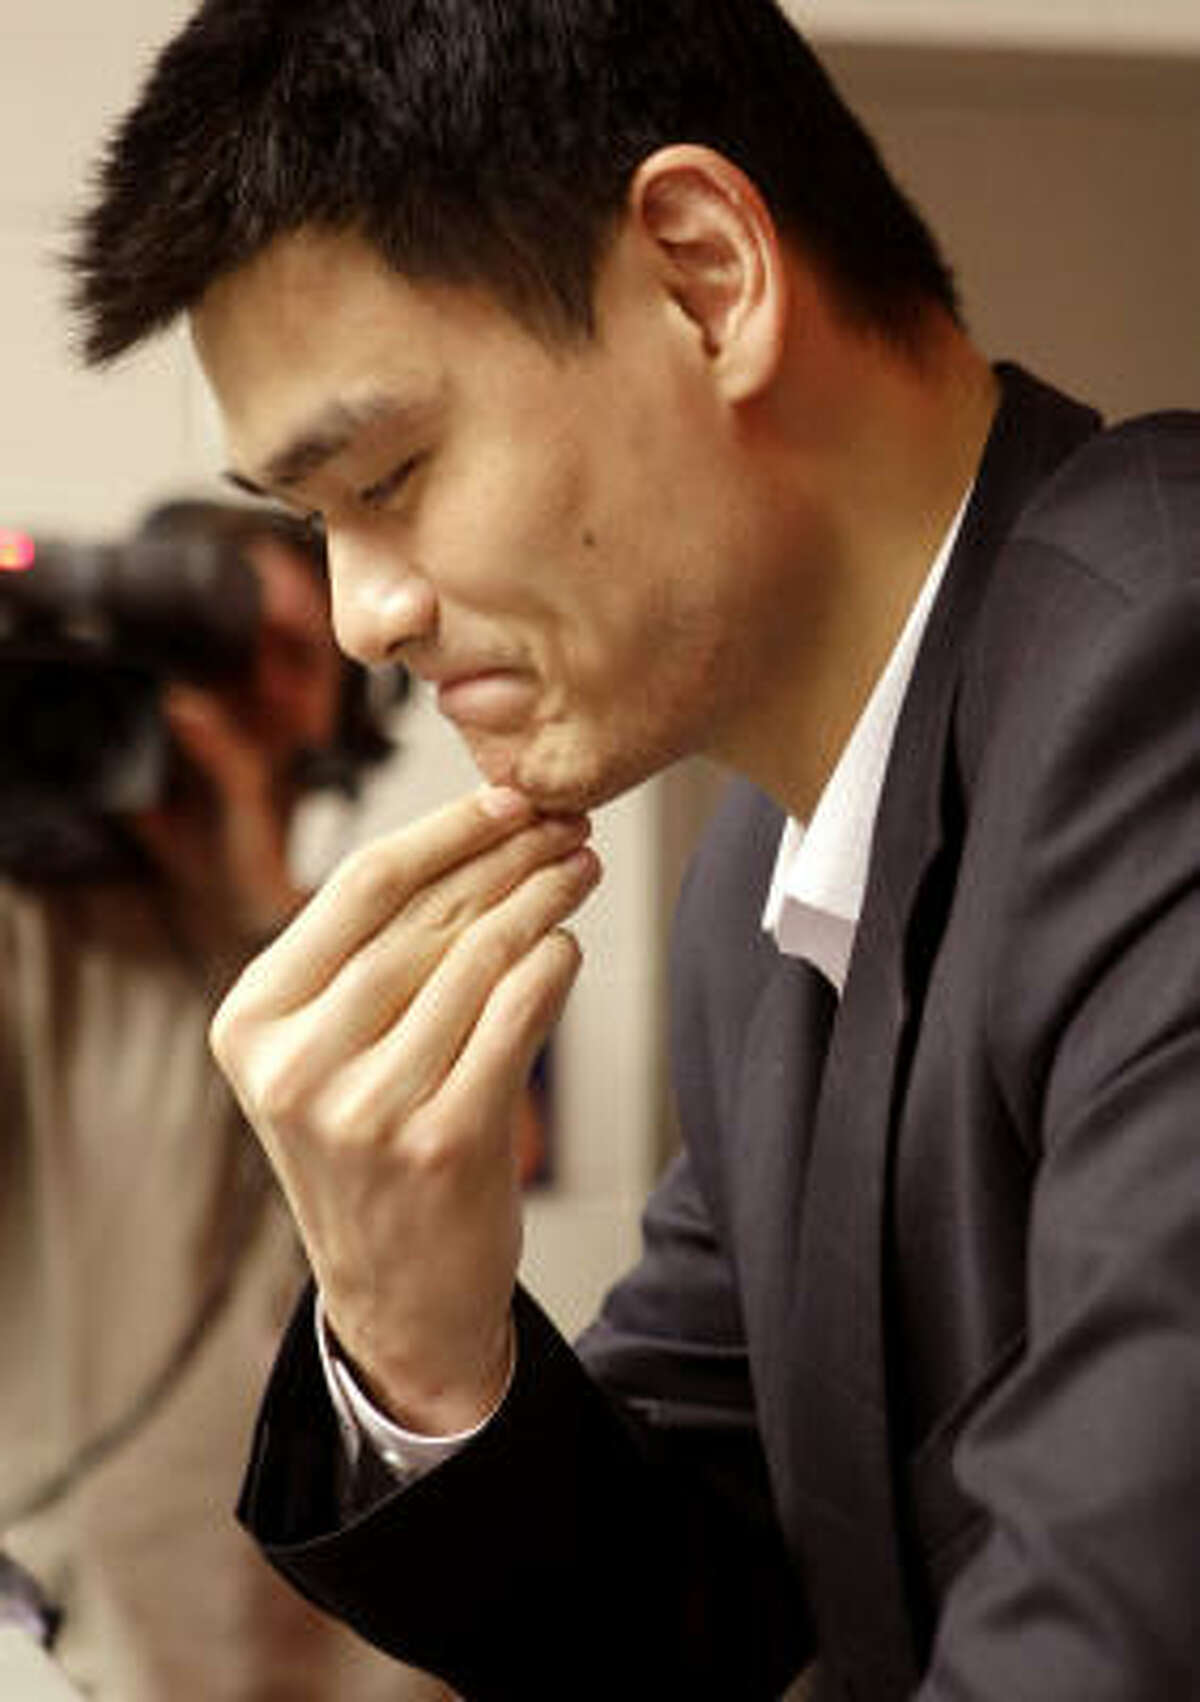 Houston Rockets center Yao Ming answers questions during a news conference after the announcement that Yao will be out for the season with a stress fracture to his left foot Tuesday, Feb. 26, 2008, in Houston.